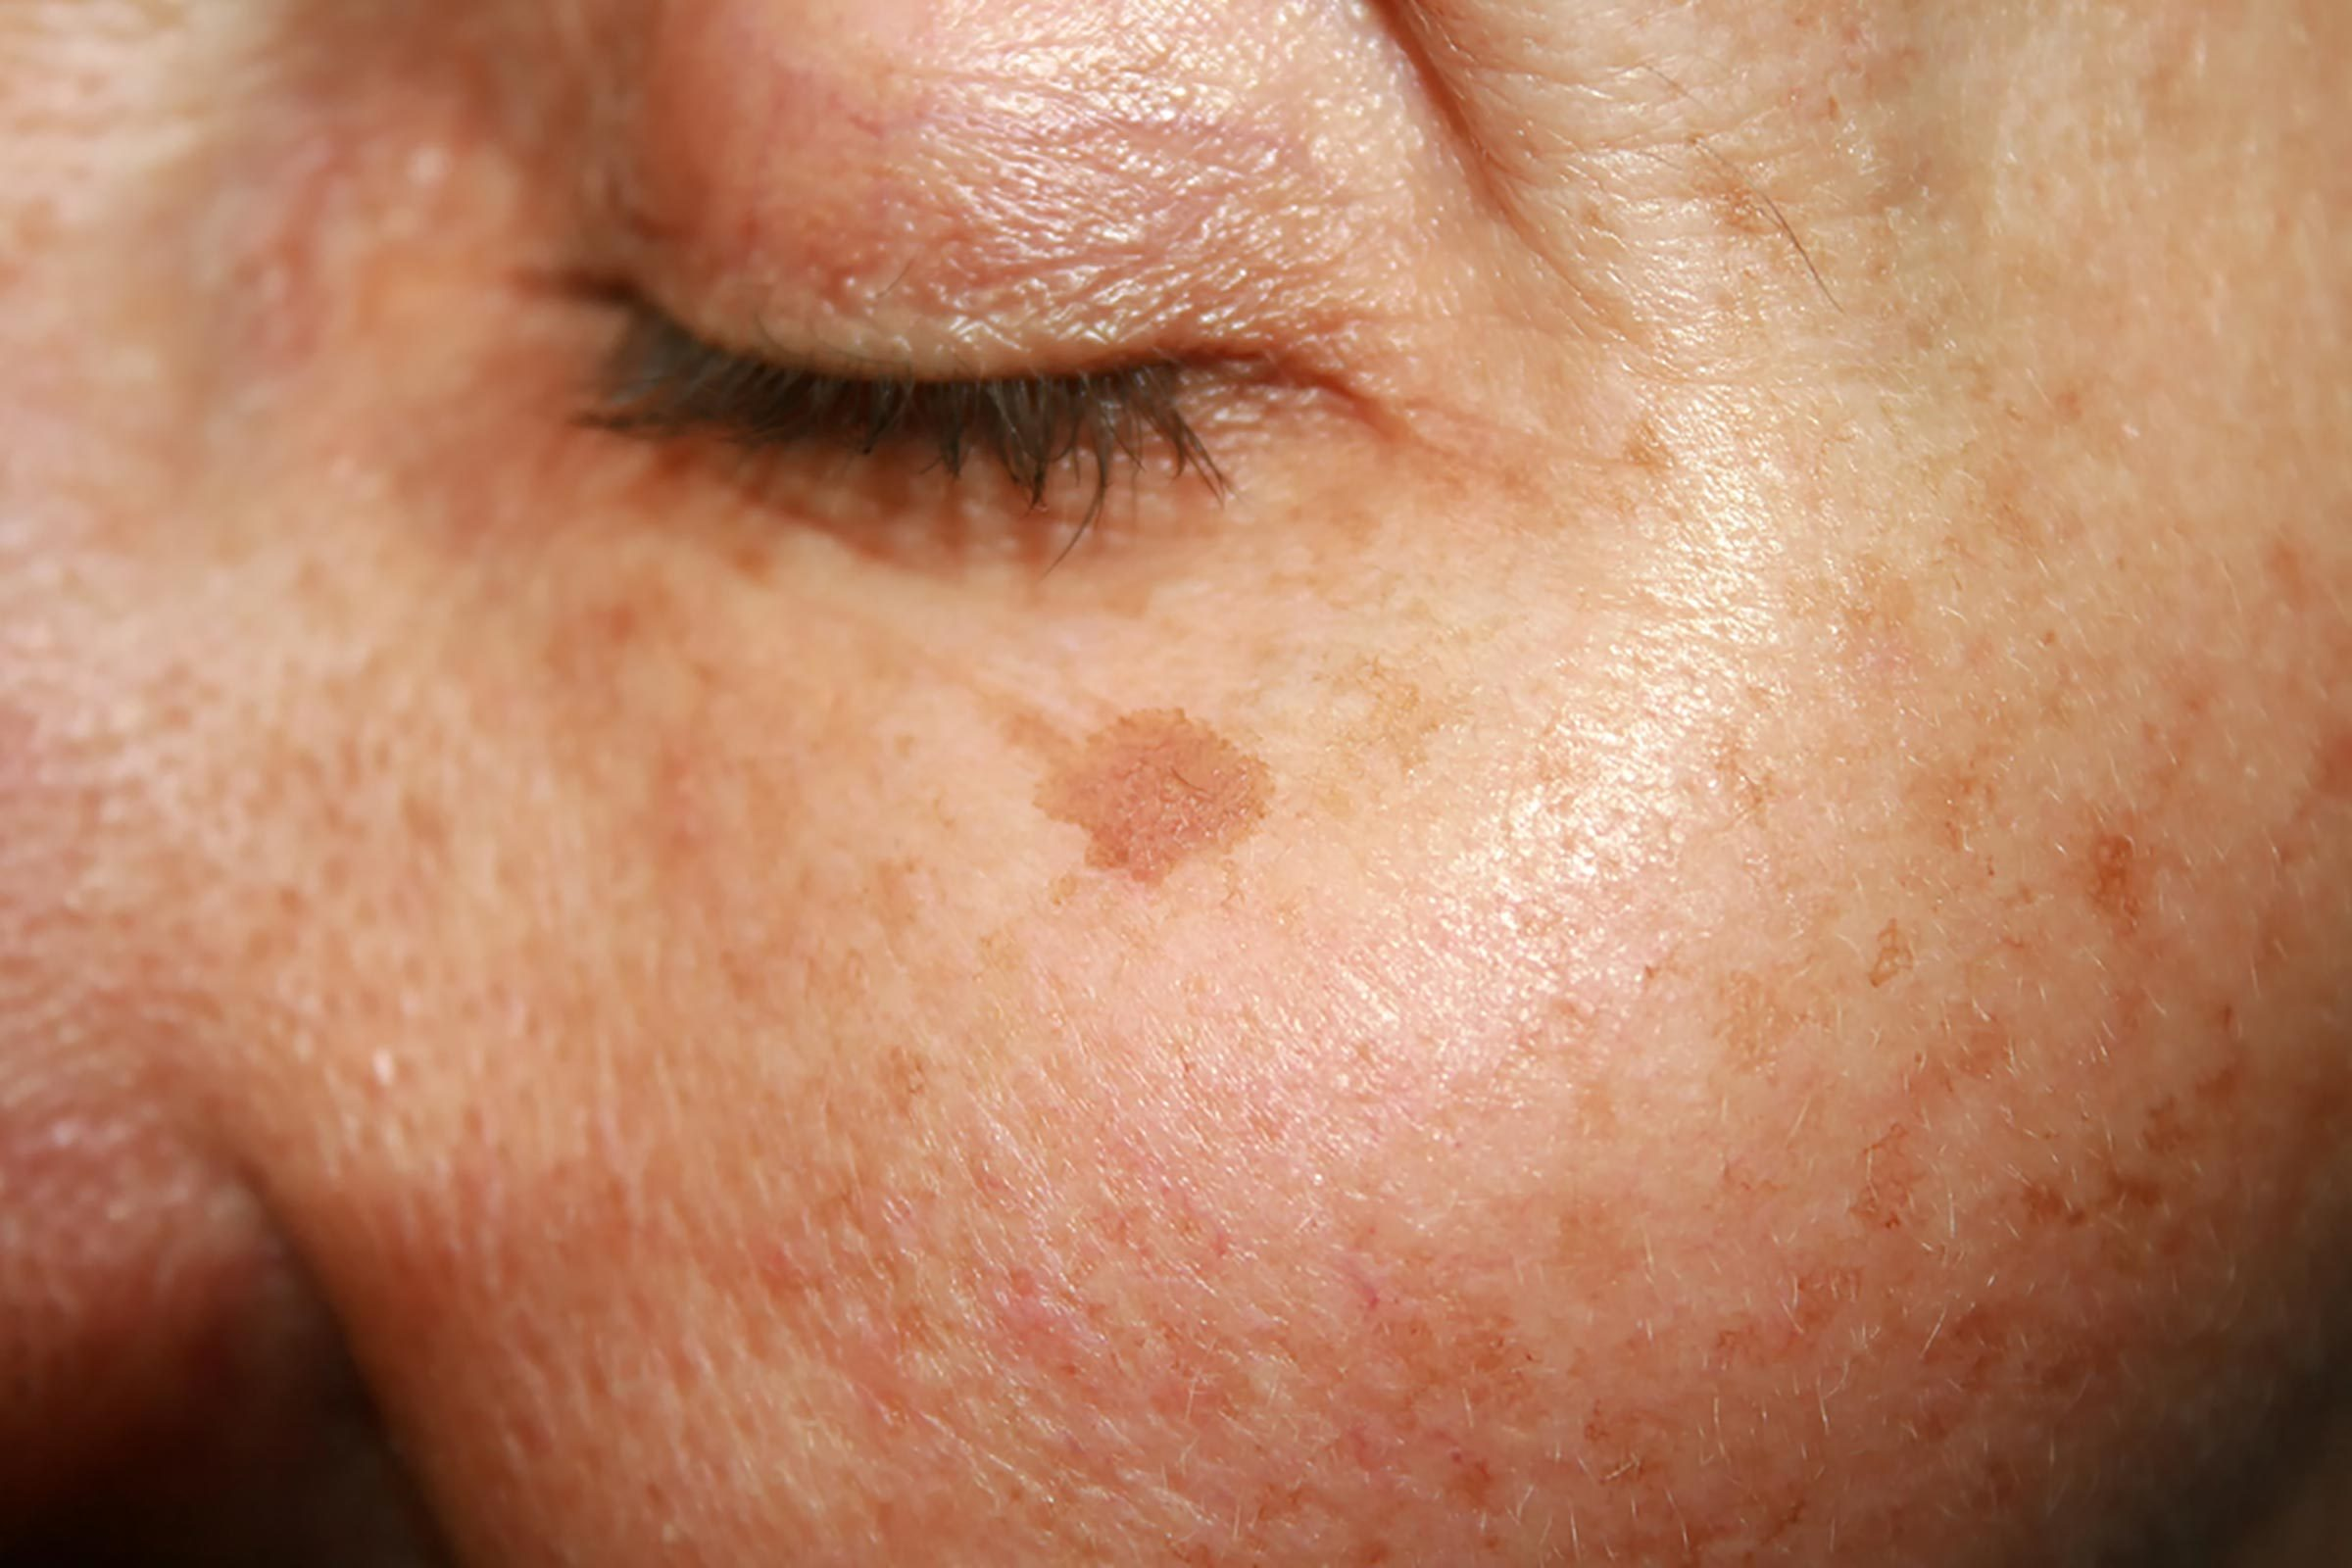 skin with melanoma under eye